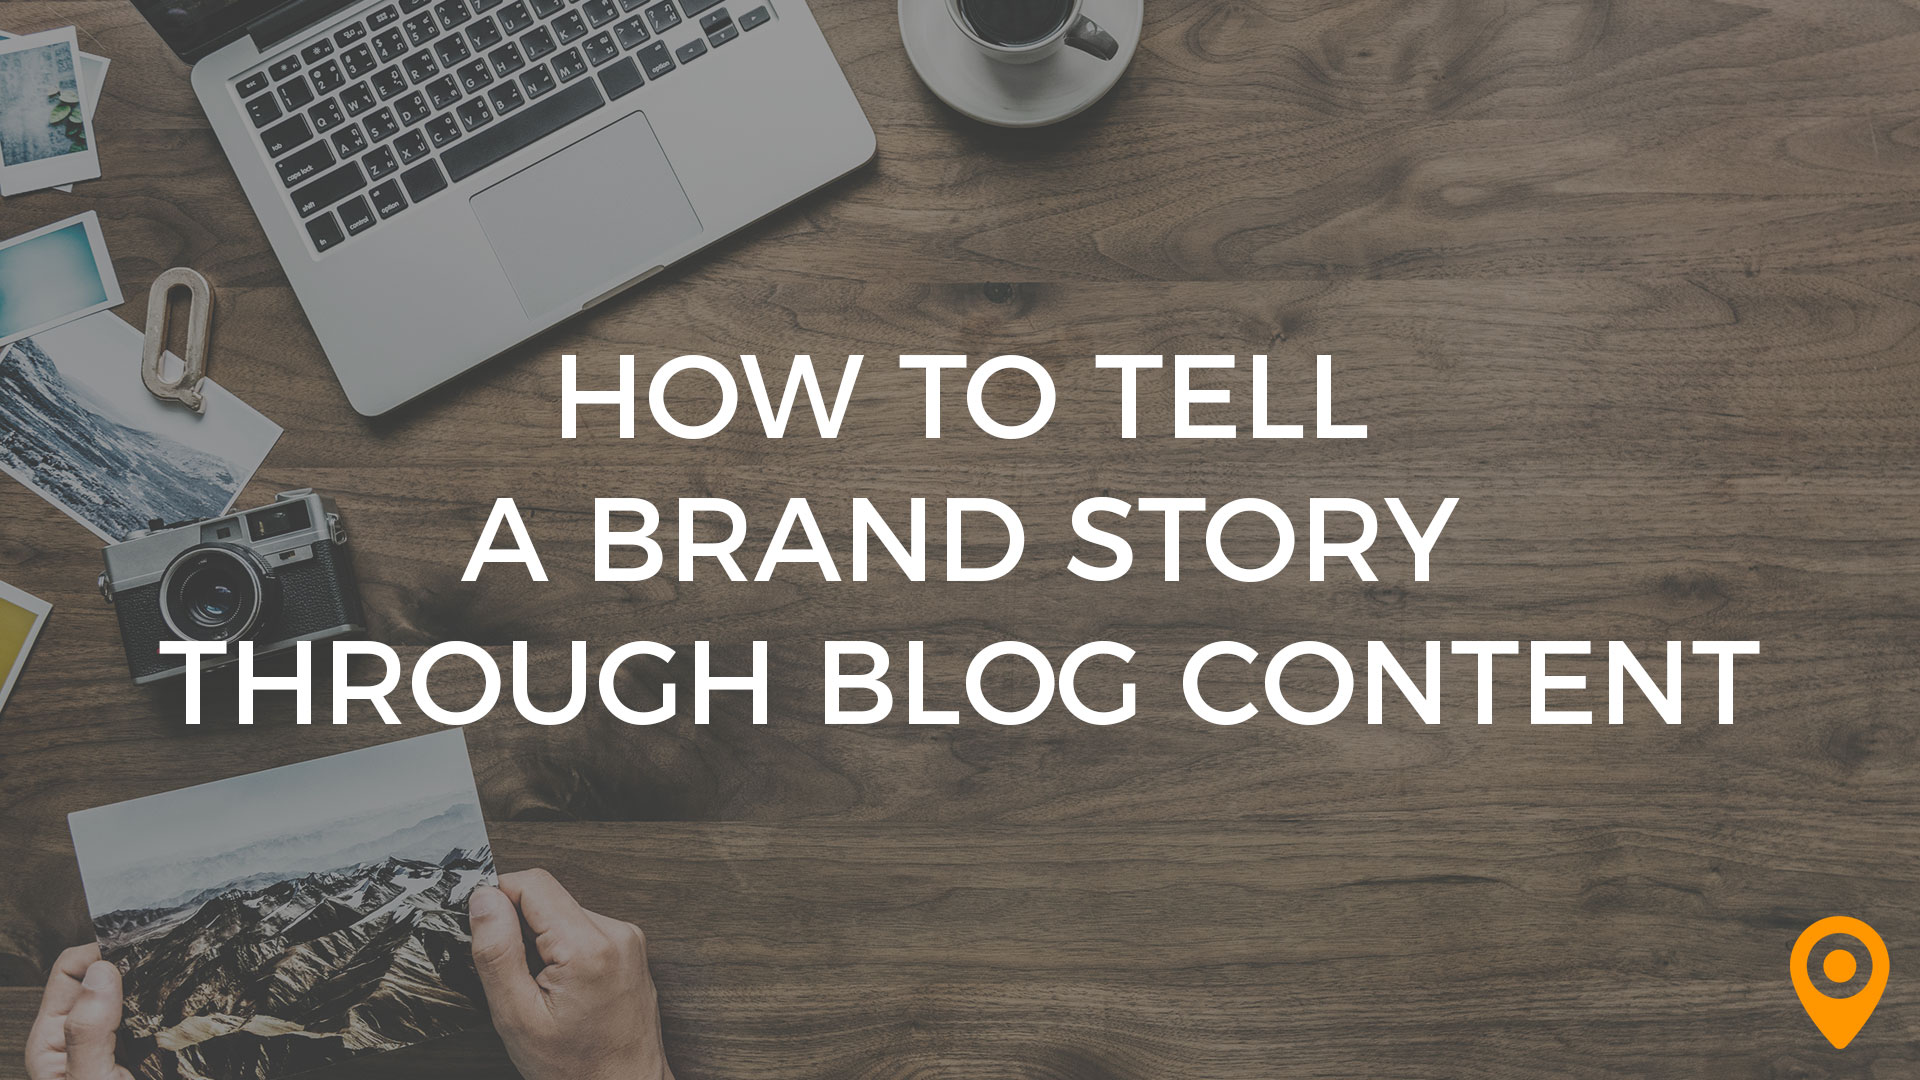 Tell a Brand Story Through Blog Content